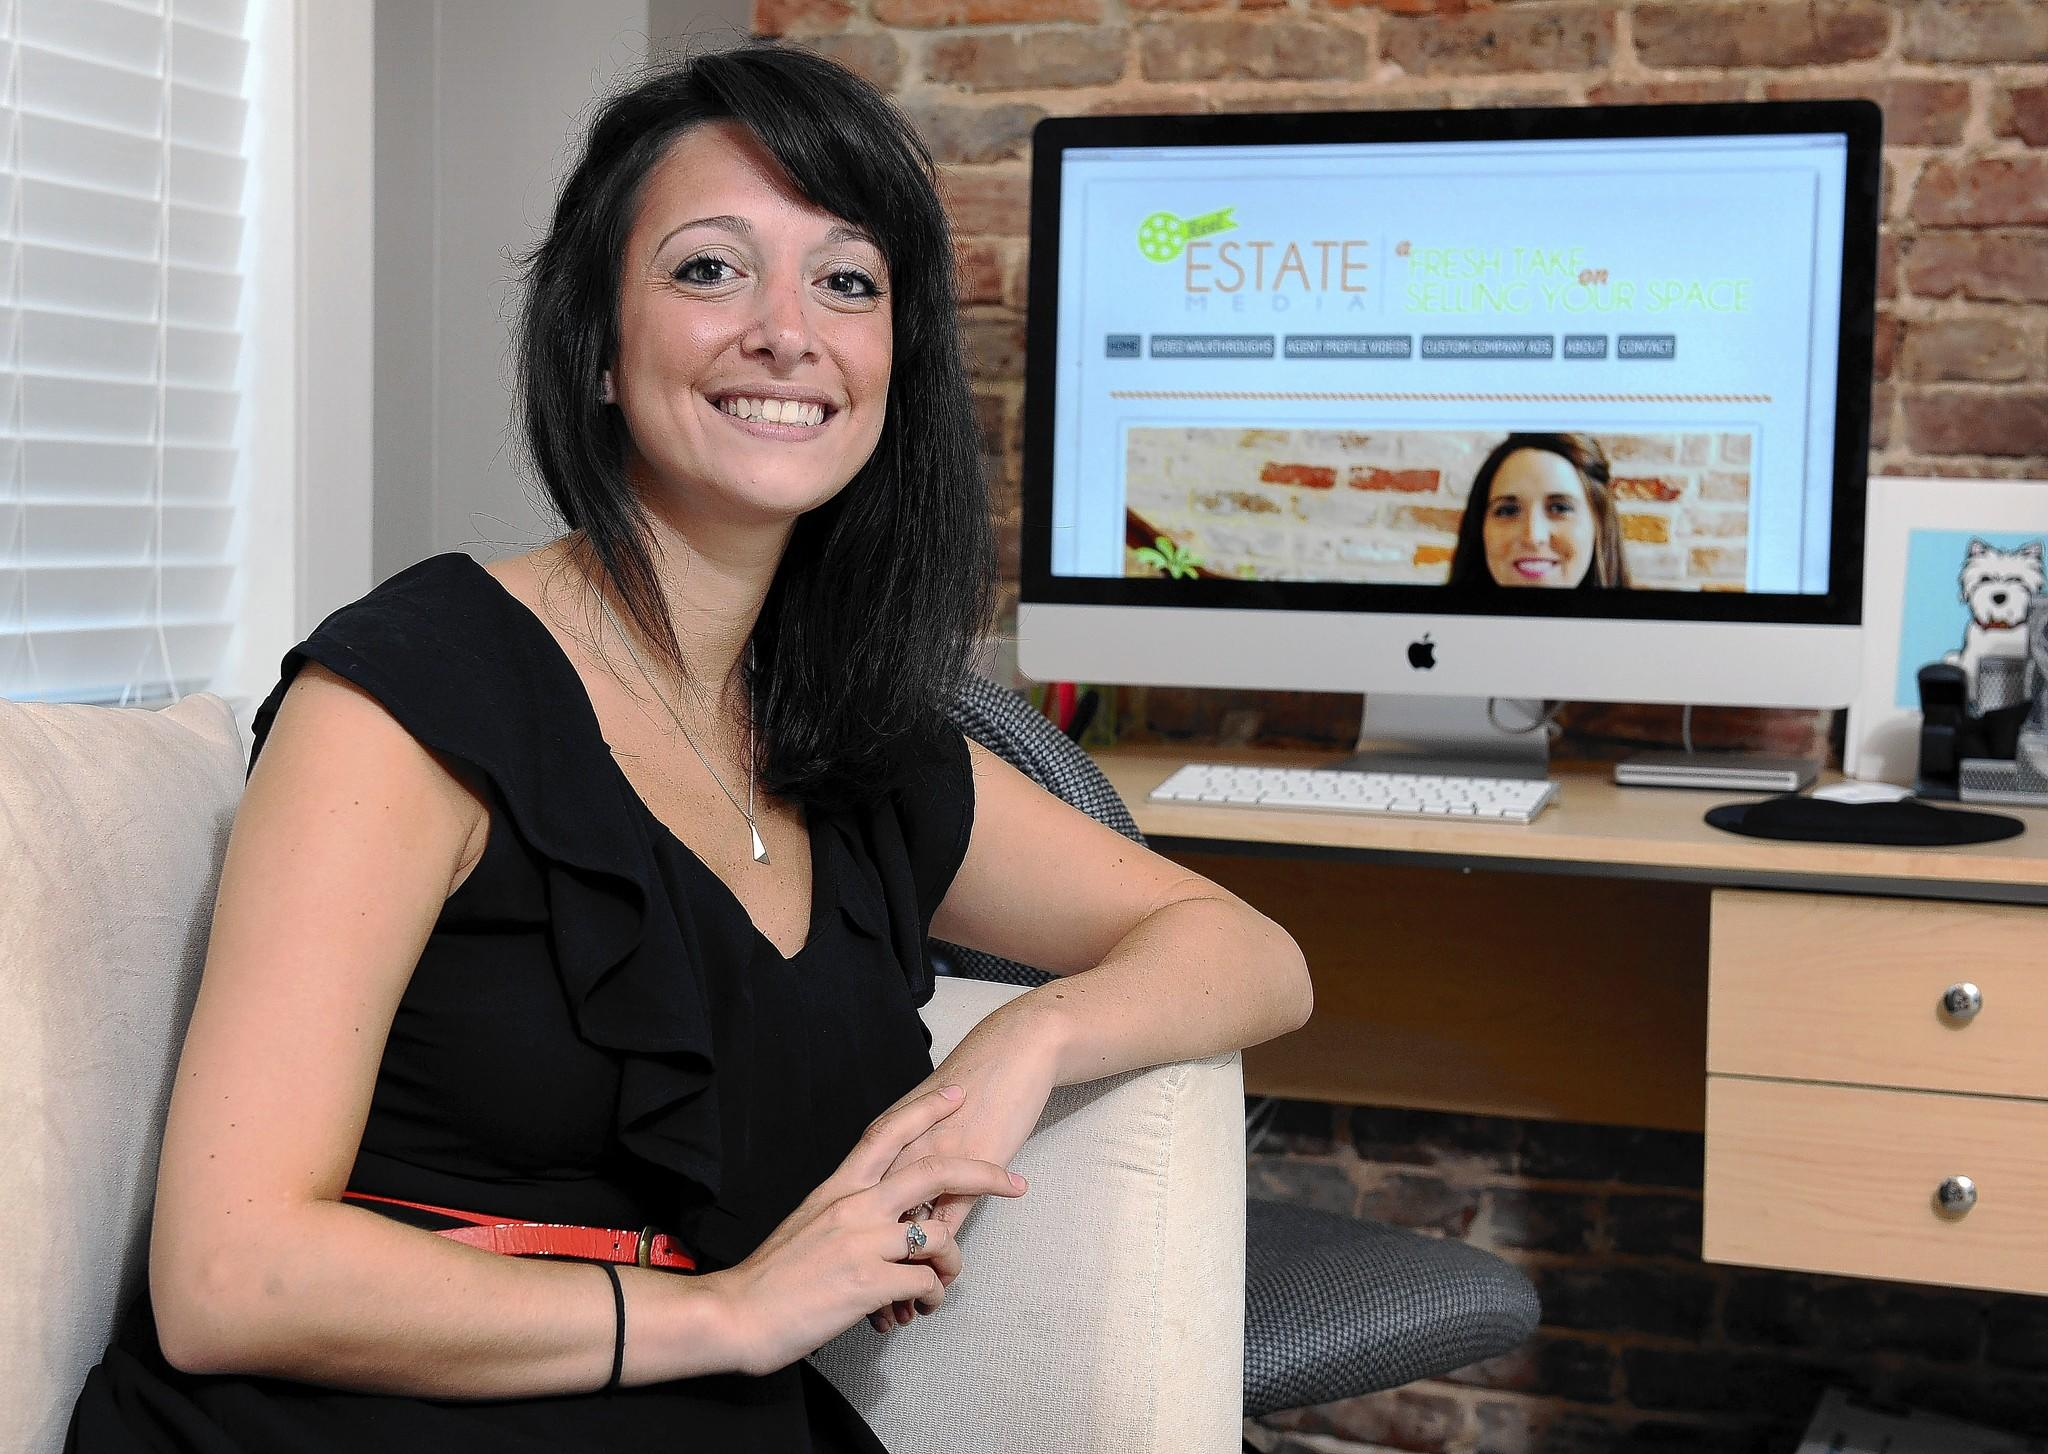 Rachel Millman, the owner and director of Reel Estate Media, at home in Canton.